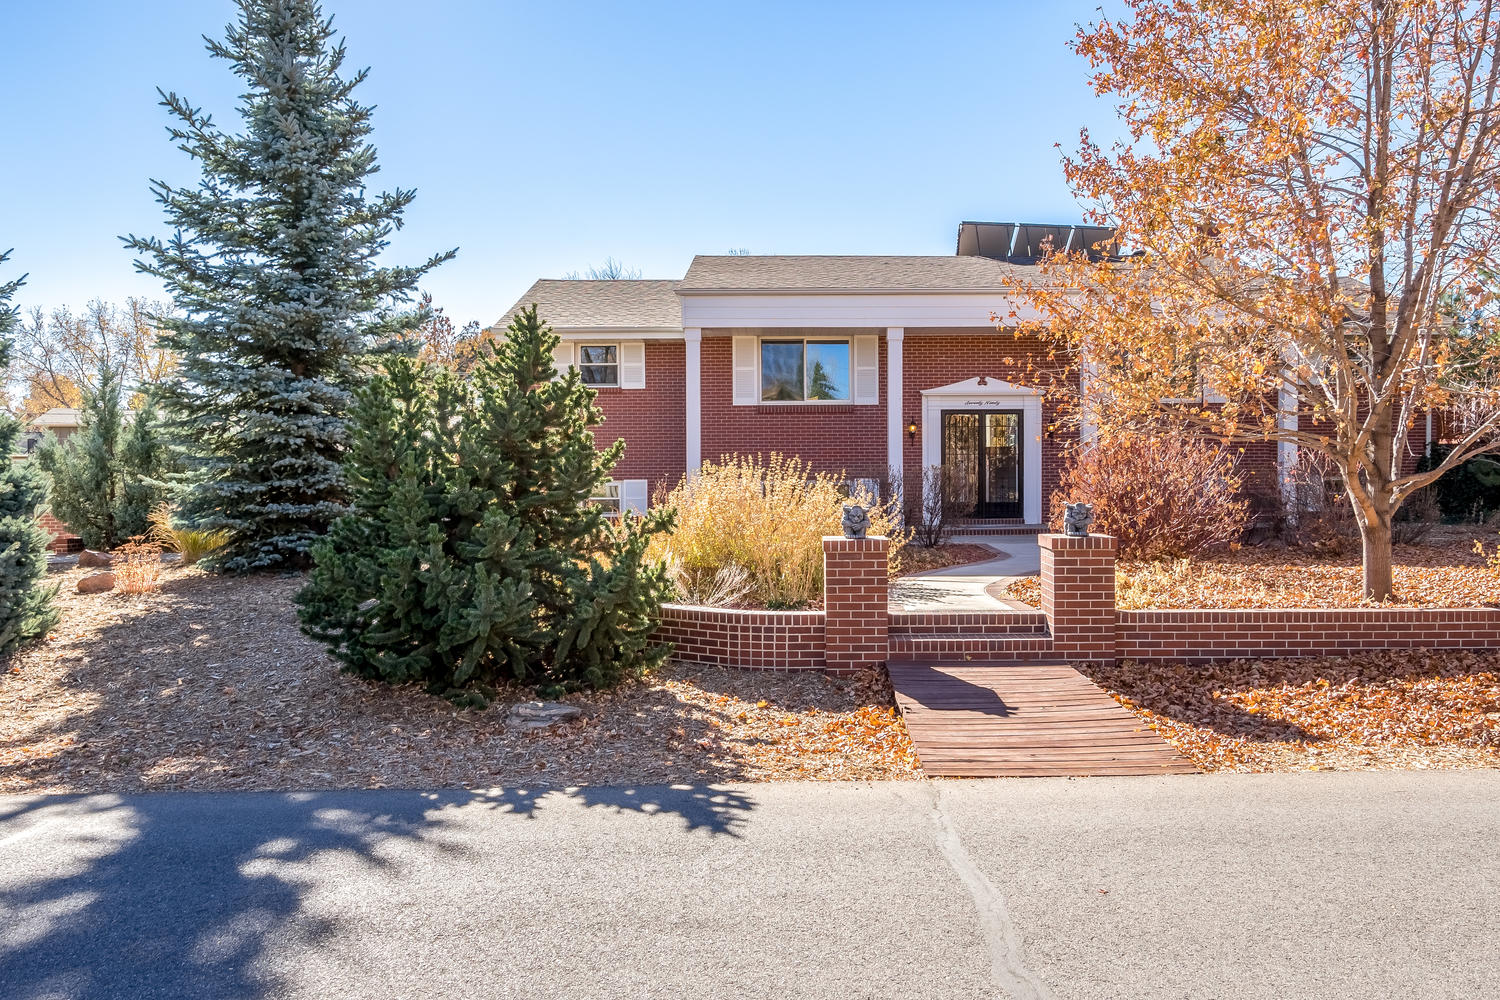 Single Family Home for Sale at Absolutely beautiful home in desirable Lochmoor neighborhood 7090 W Radcliff Ave Littleton, Colorado, 80123 United States